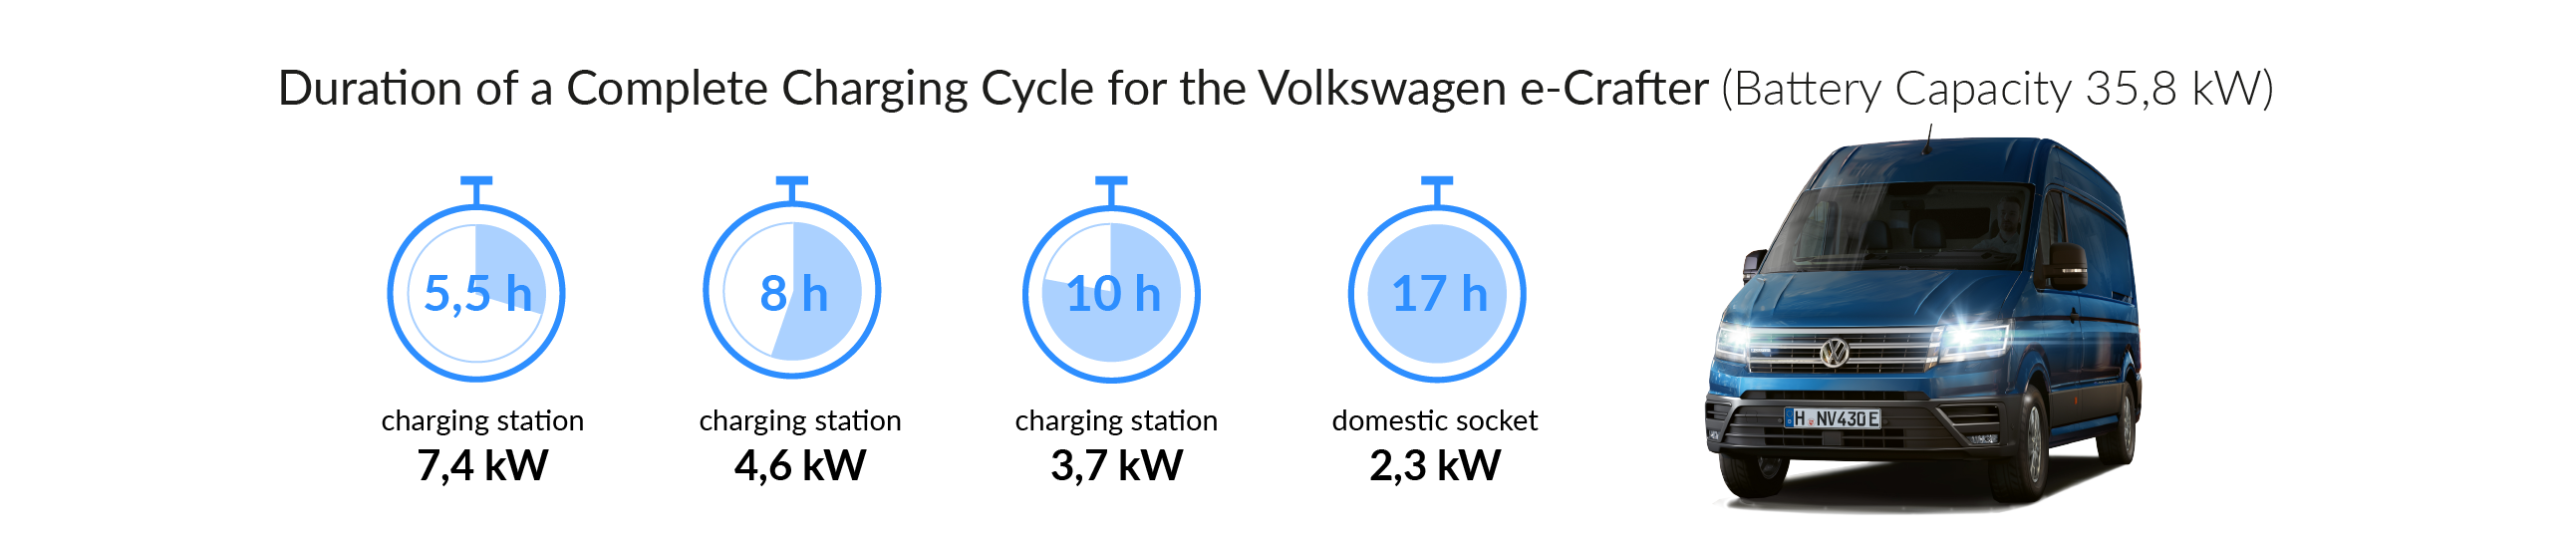 Charging times of the Volkswagen e-Crafter